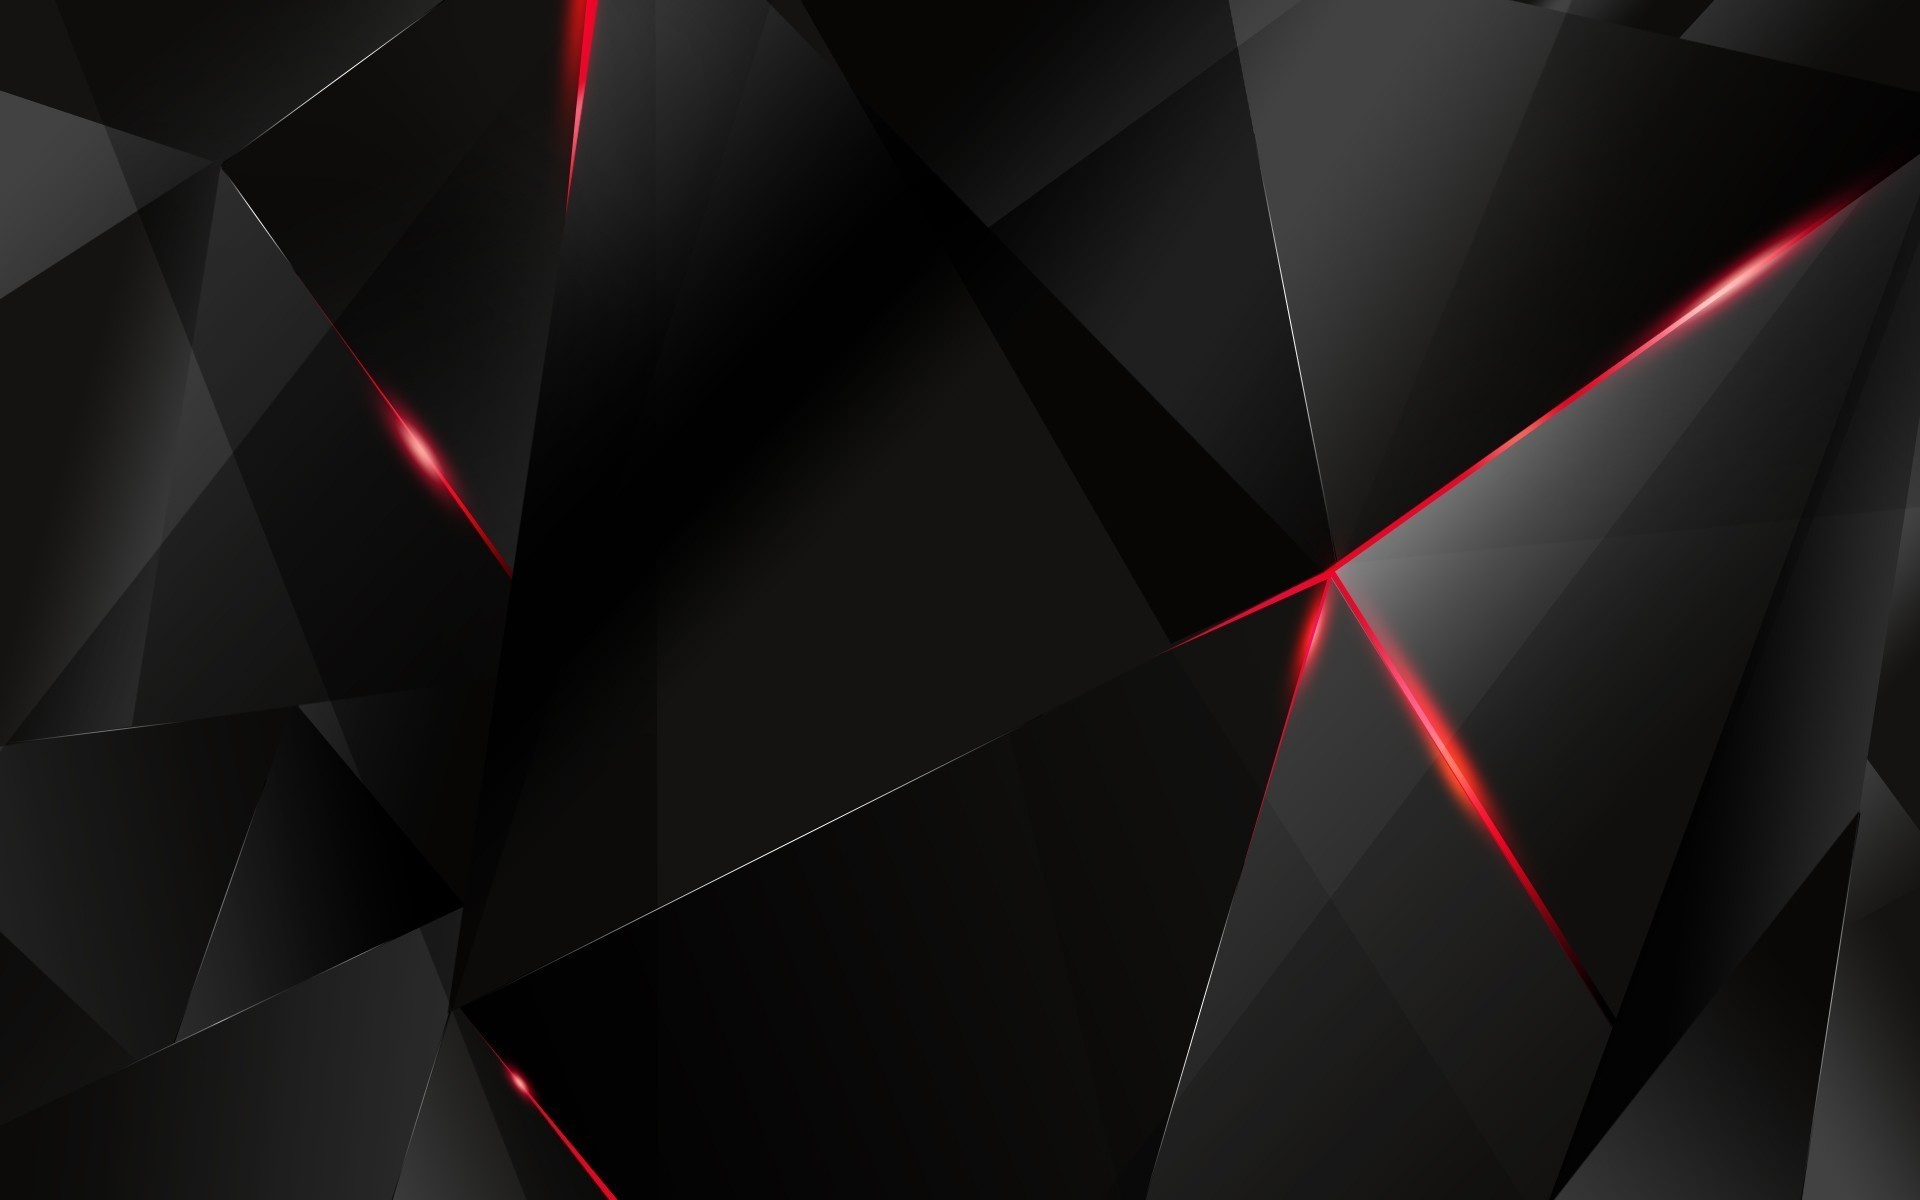 1920x1200 Black polygon with red edges Wallpaper #1202